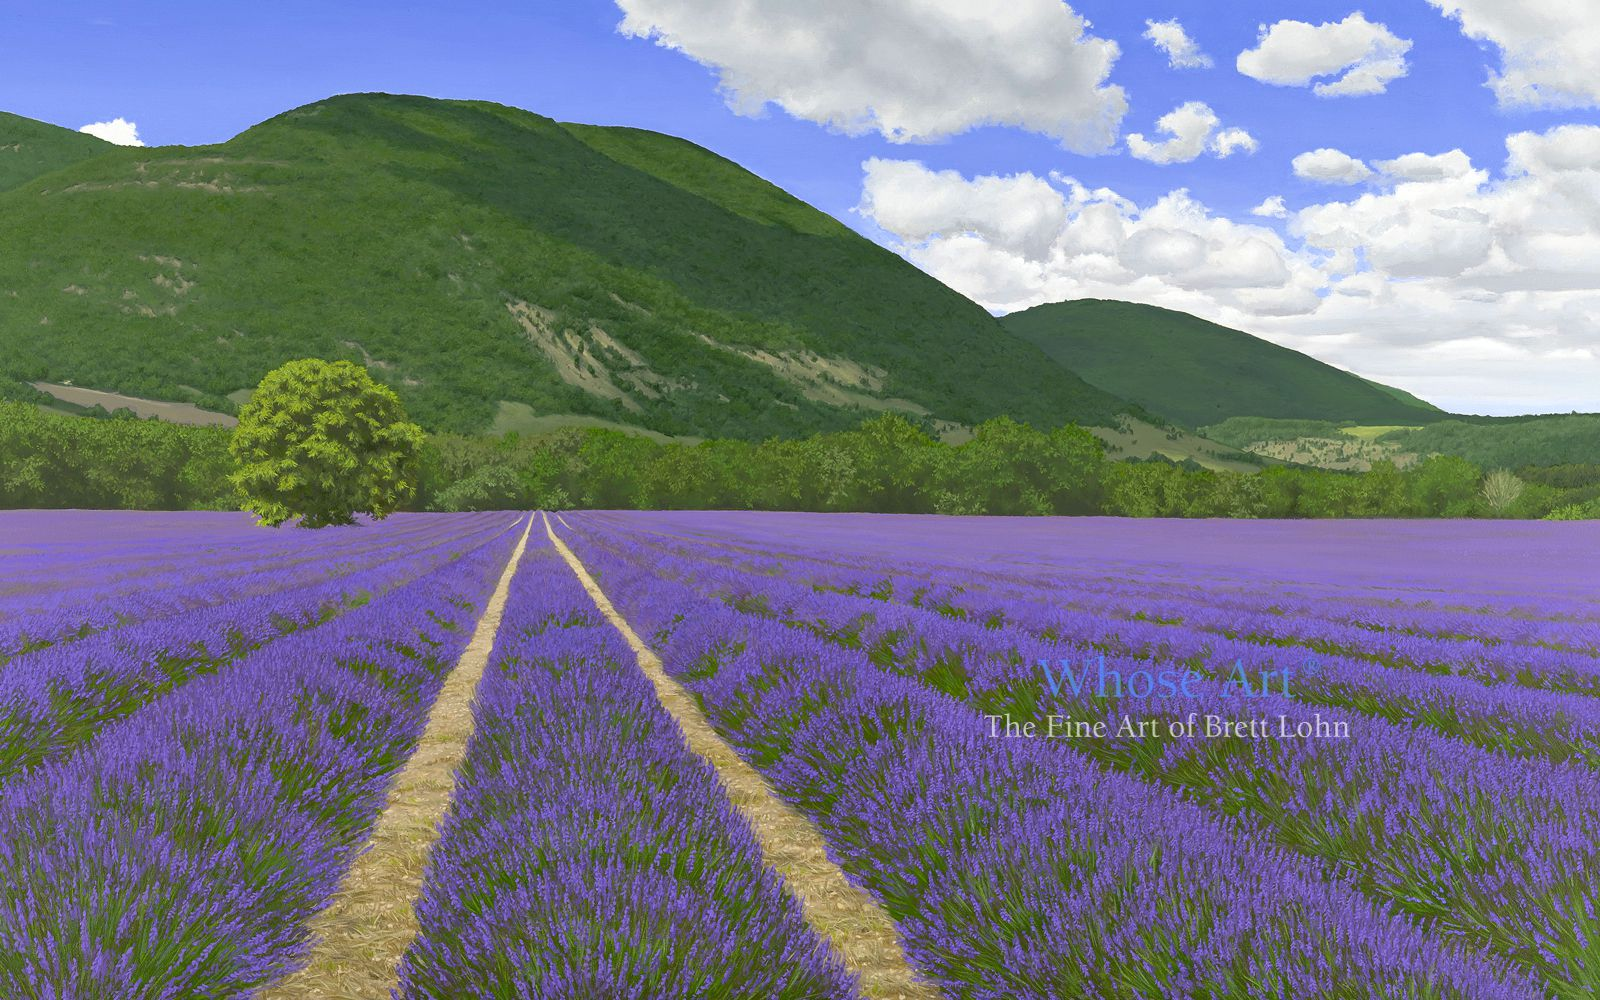 Lavender fields painting in oil on canvas showing rows of lavender in a field. The weather is warm and the breeze still